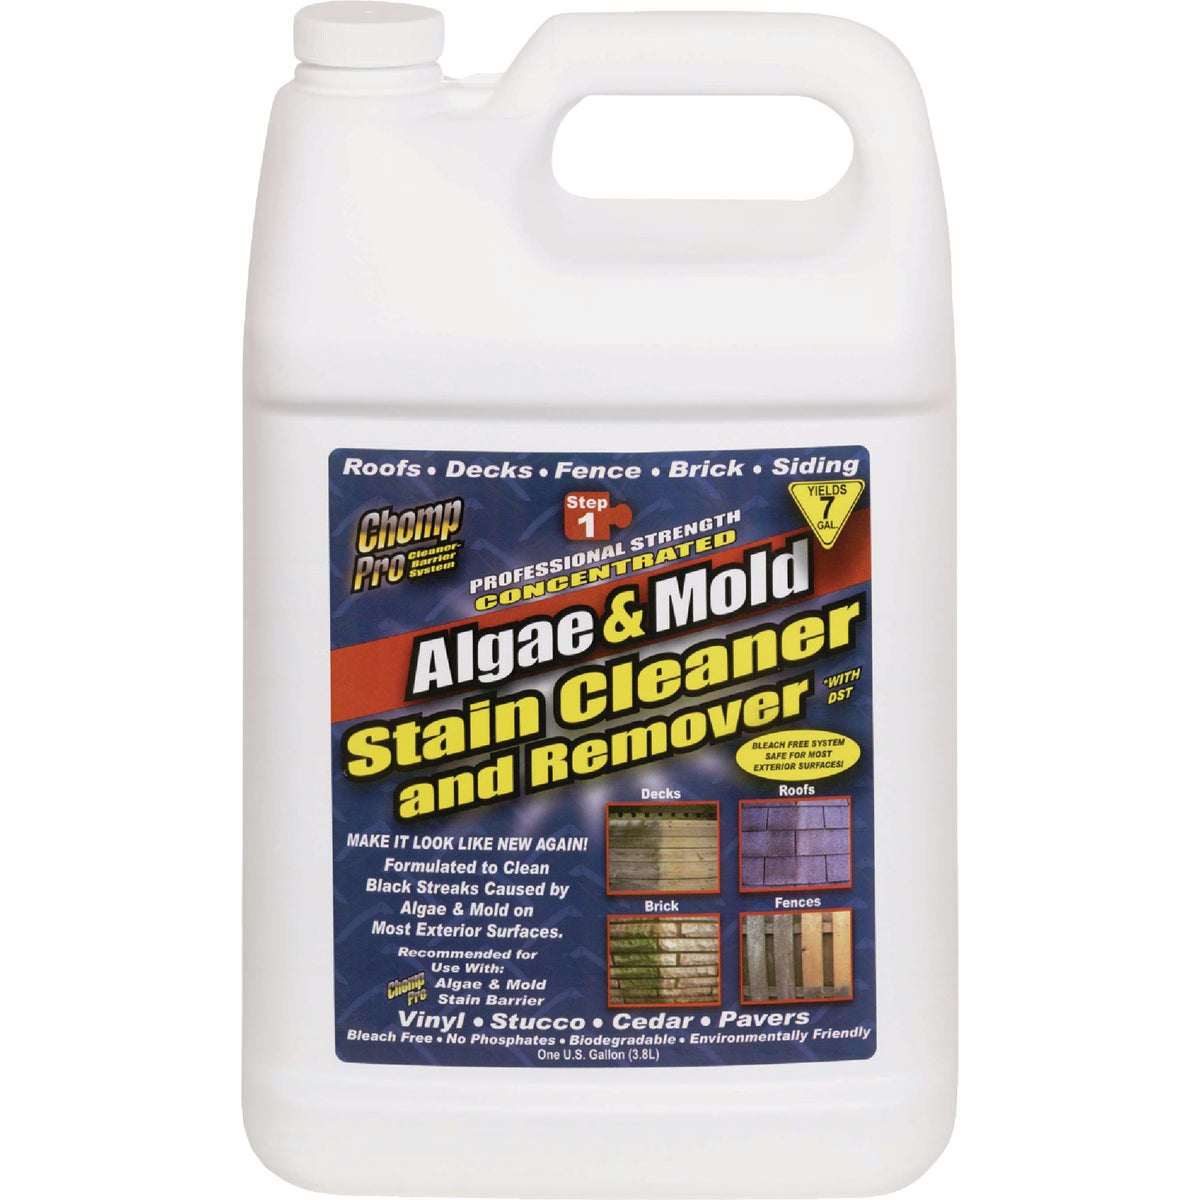 ALGAE/MOLD CLEANER - 53034 by E S I